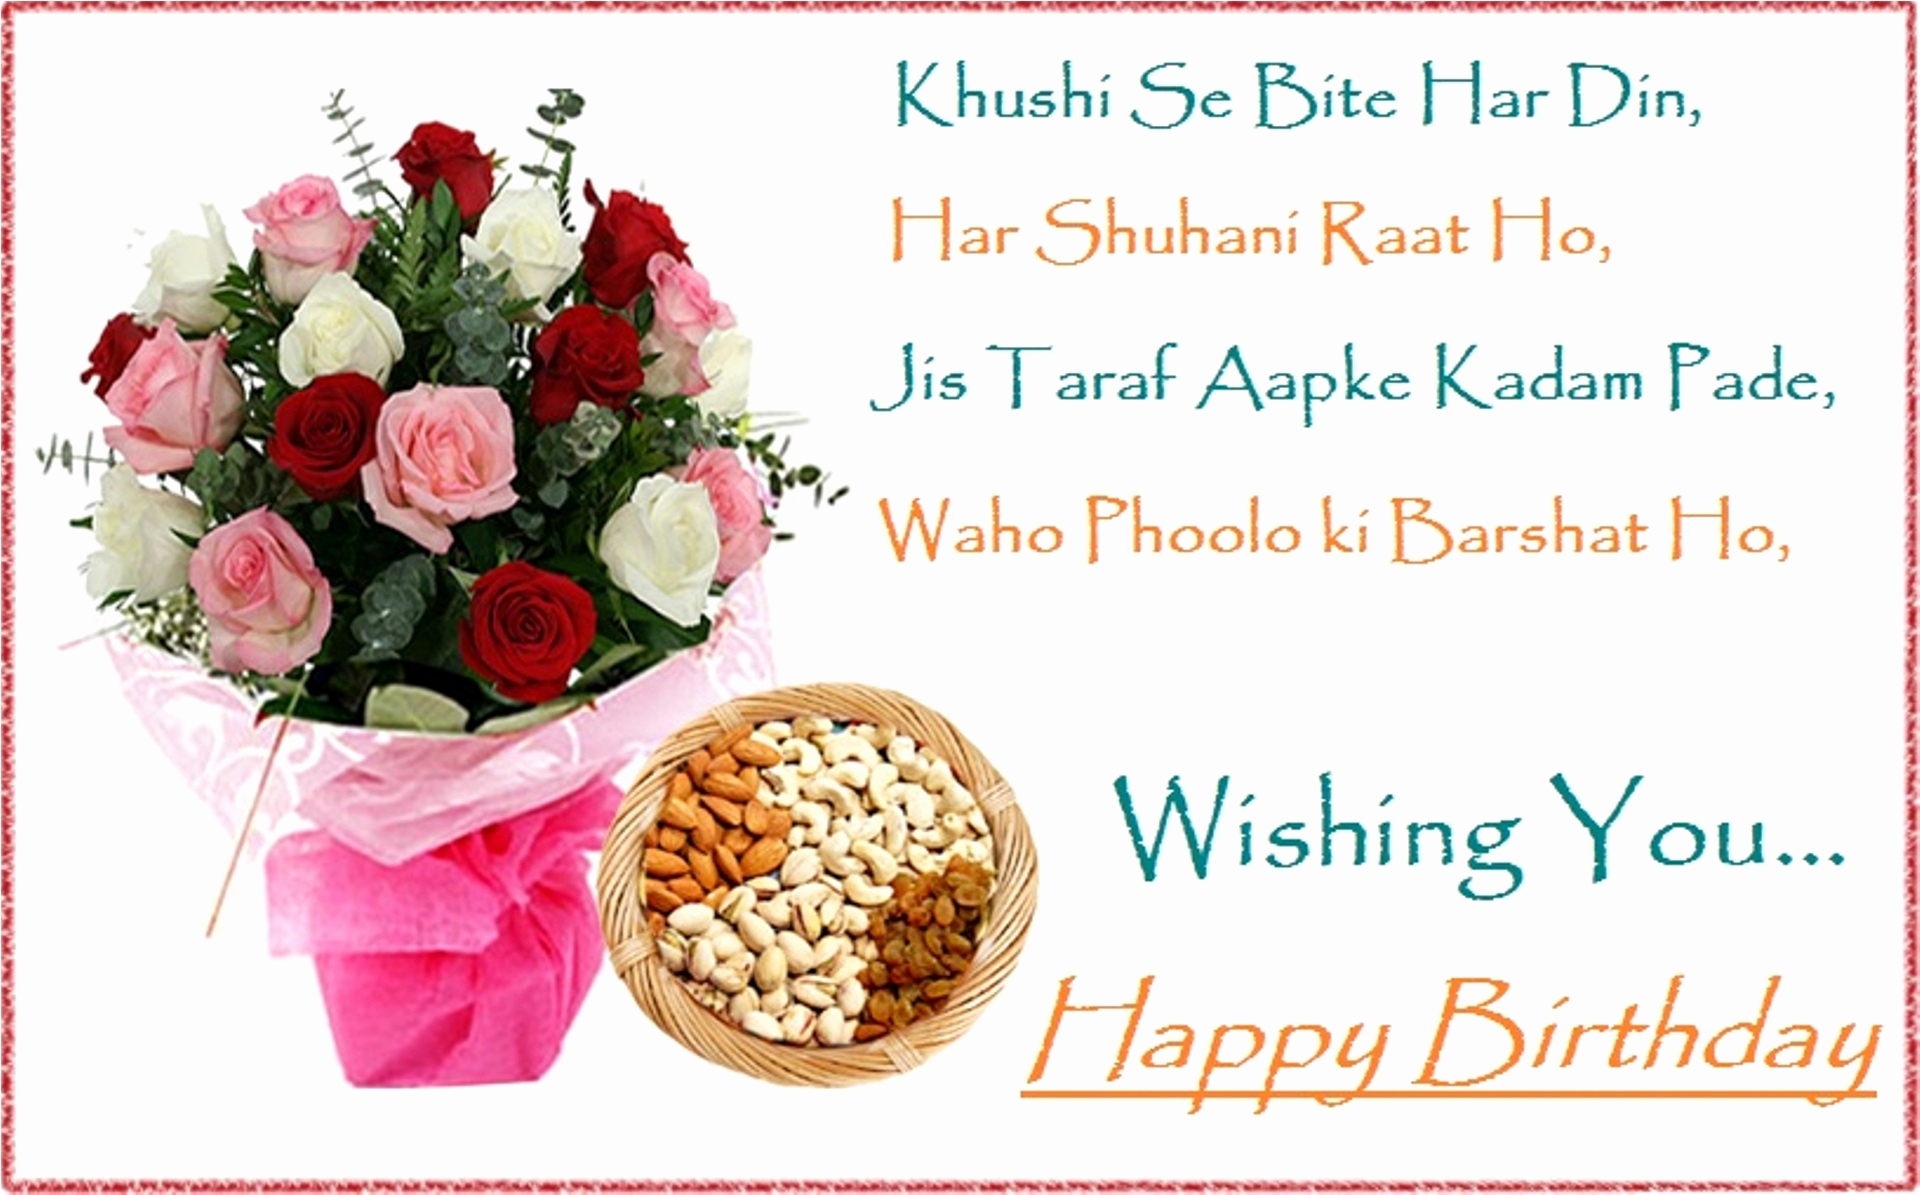 happy birthday message download ; free-birthday-cards-awesome-happy-birthday-wishes-wallpaper-free-download-of-free-birthday-cards